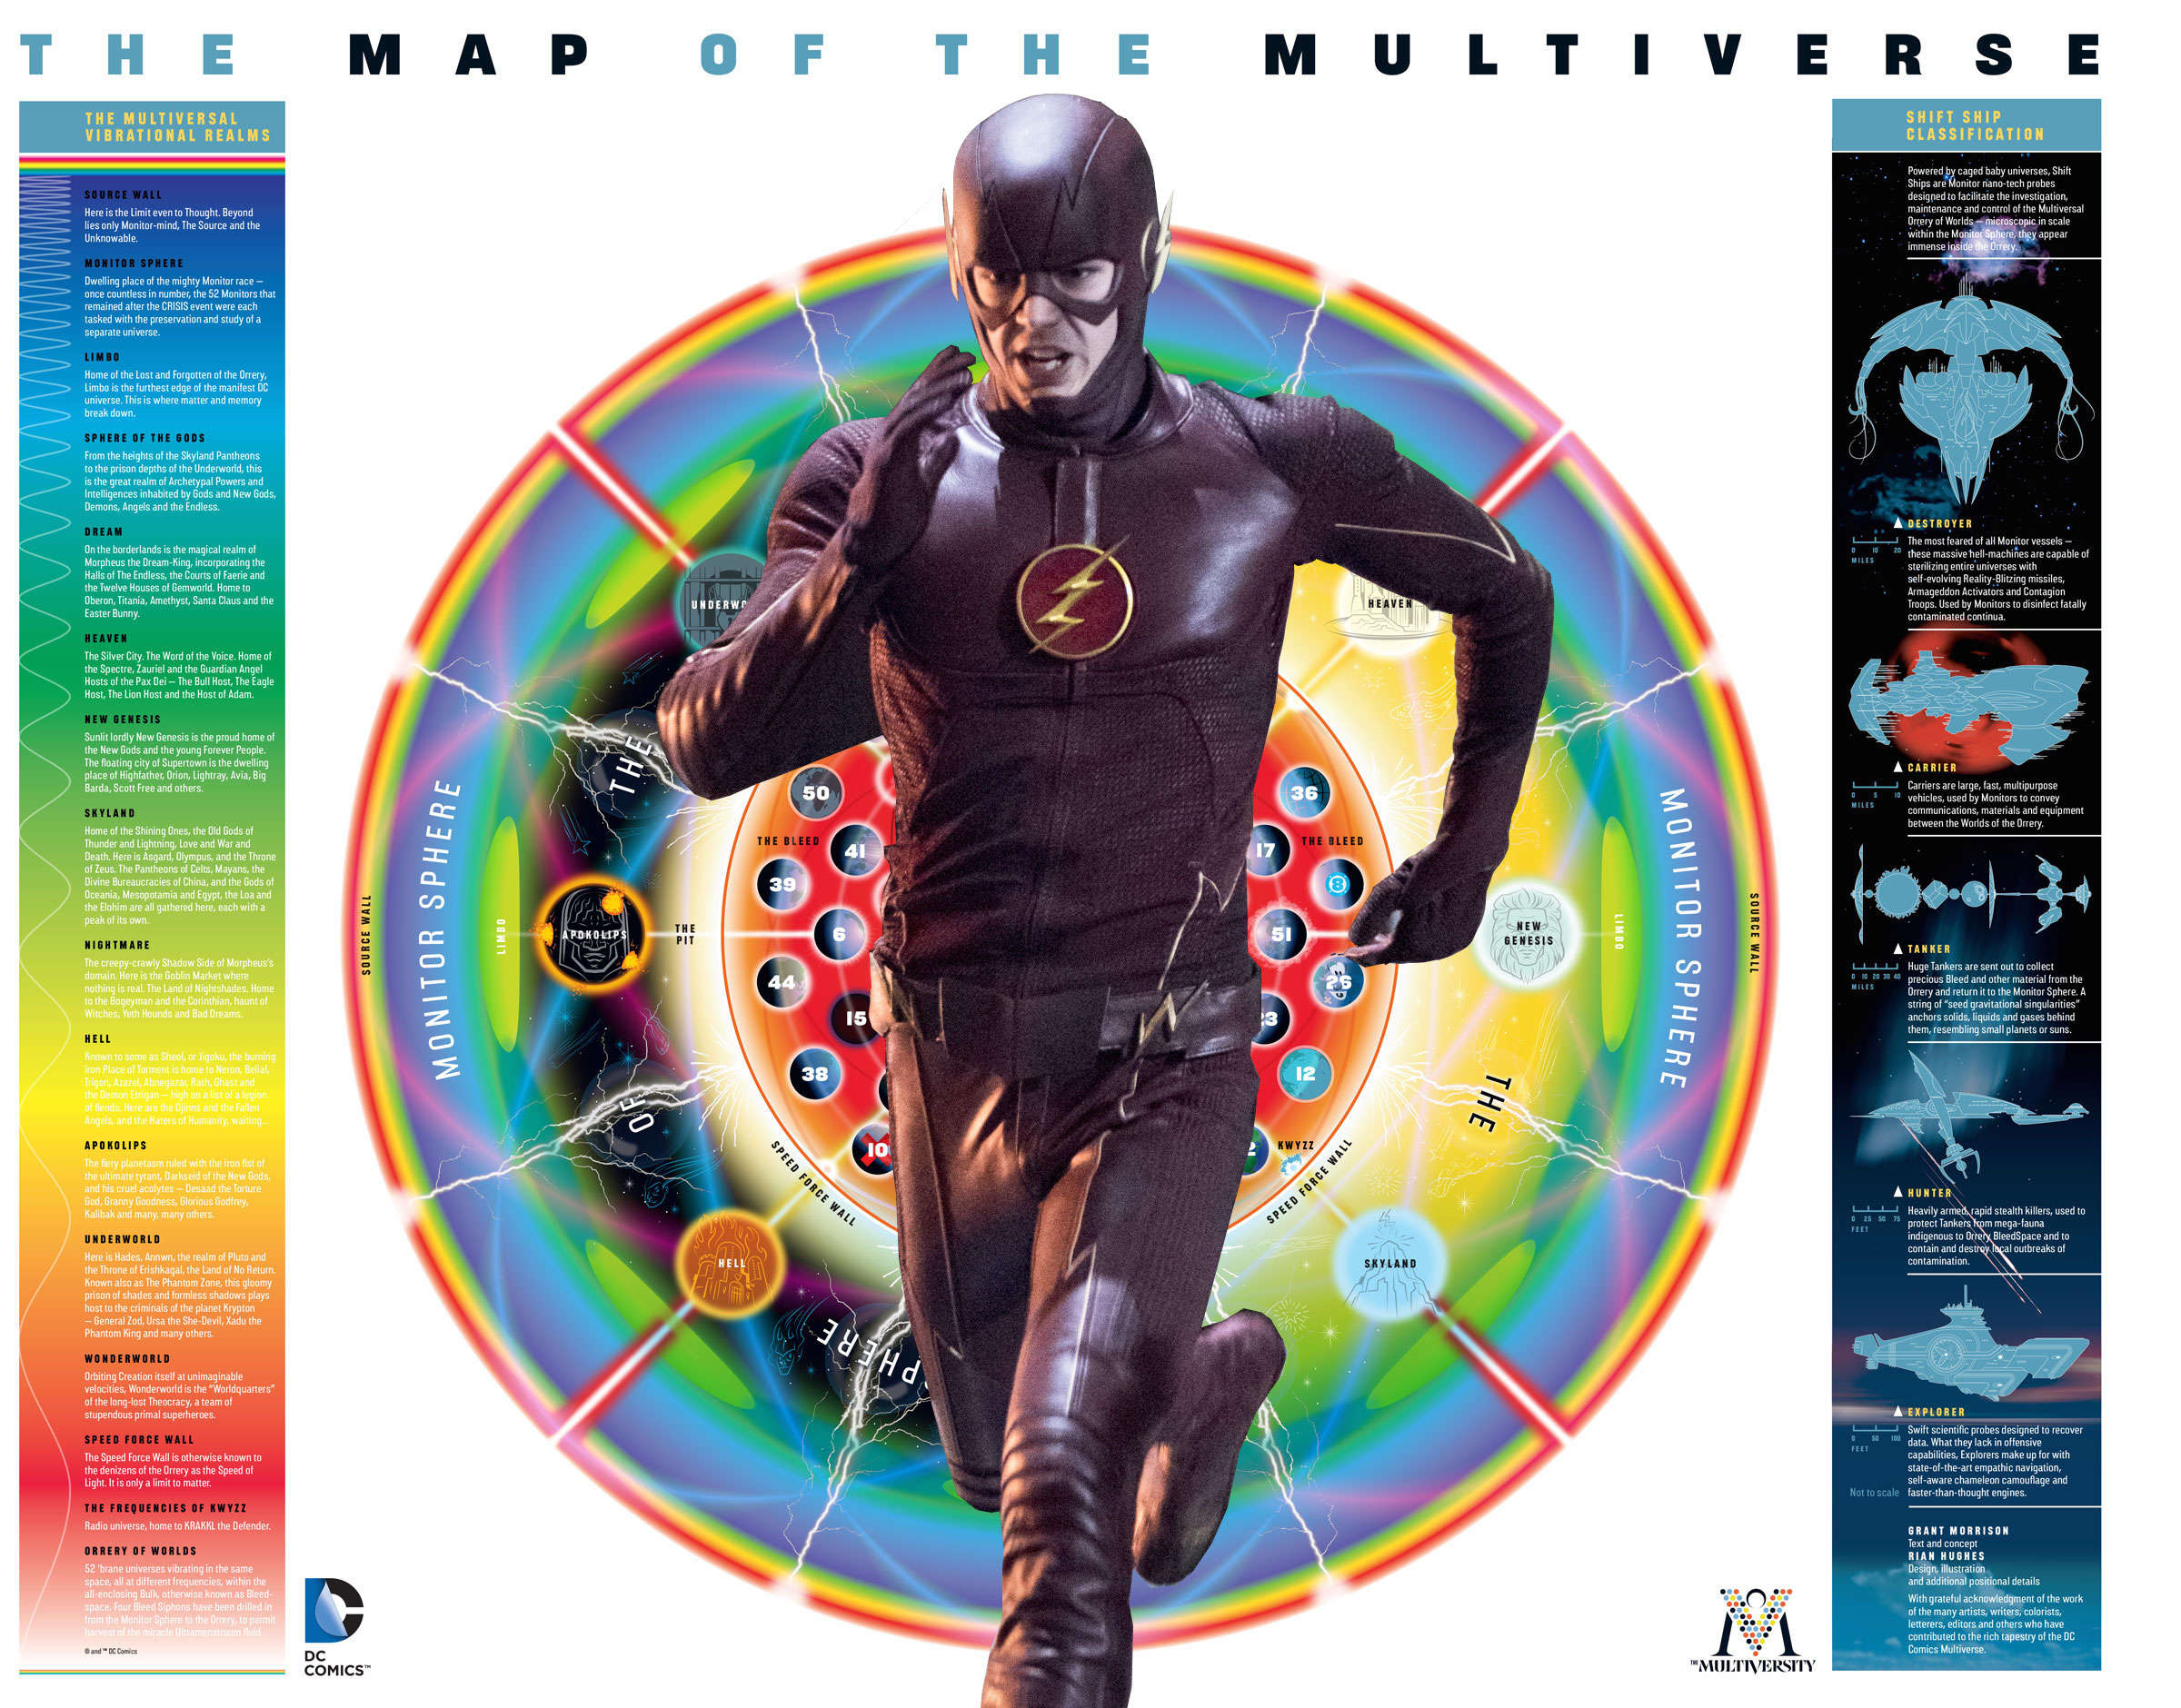 multiversity-map-2400-53ee6b4c22d9a9-11031355-207367